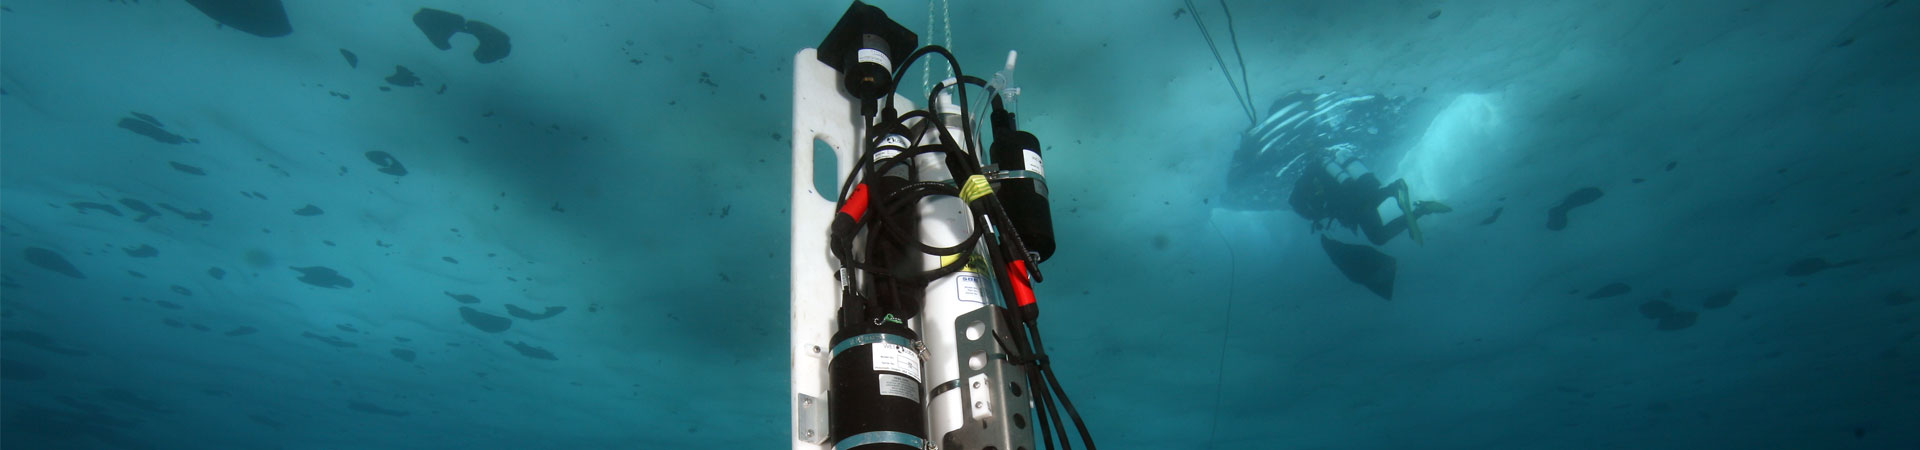 A piece of marine technology dangling below the sea ice